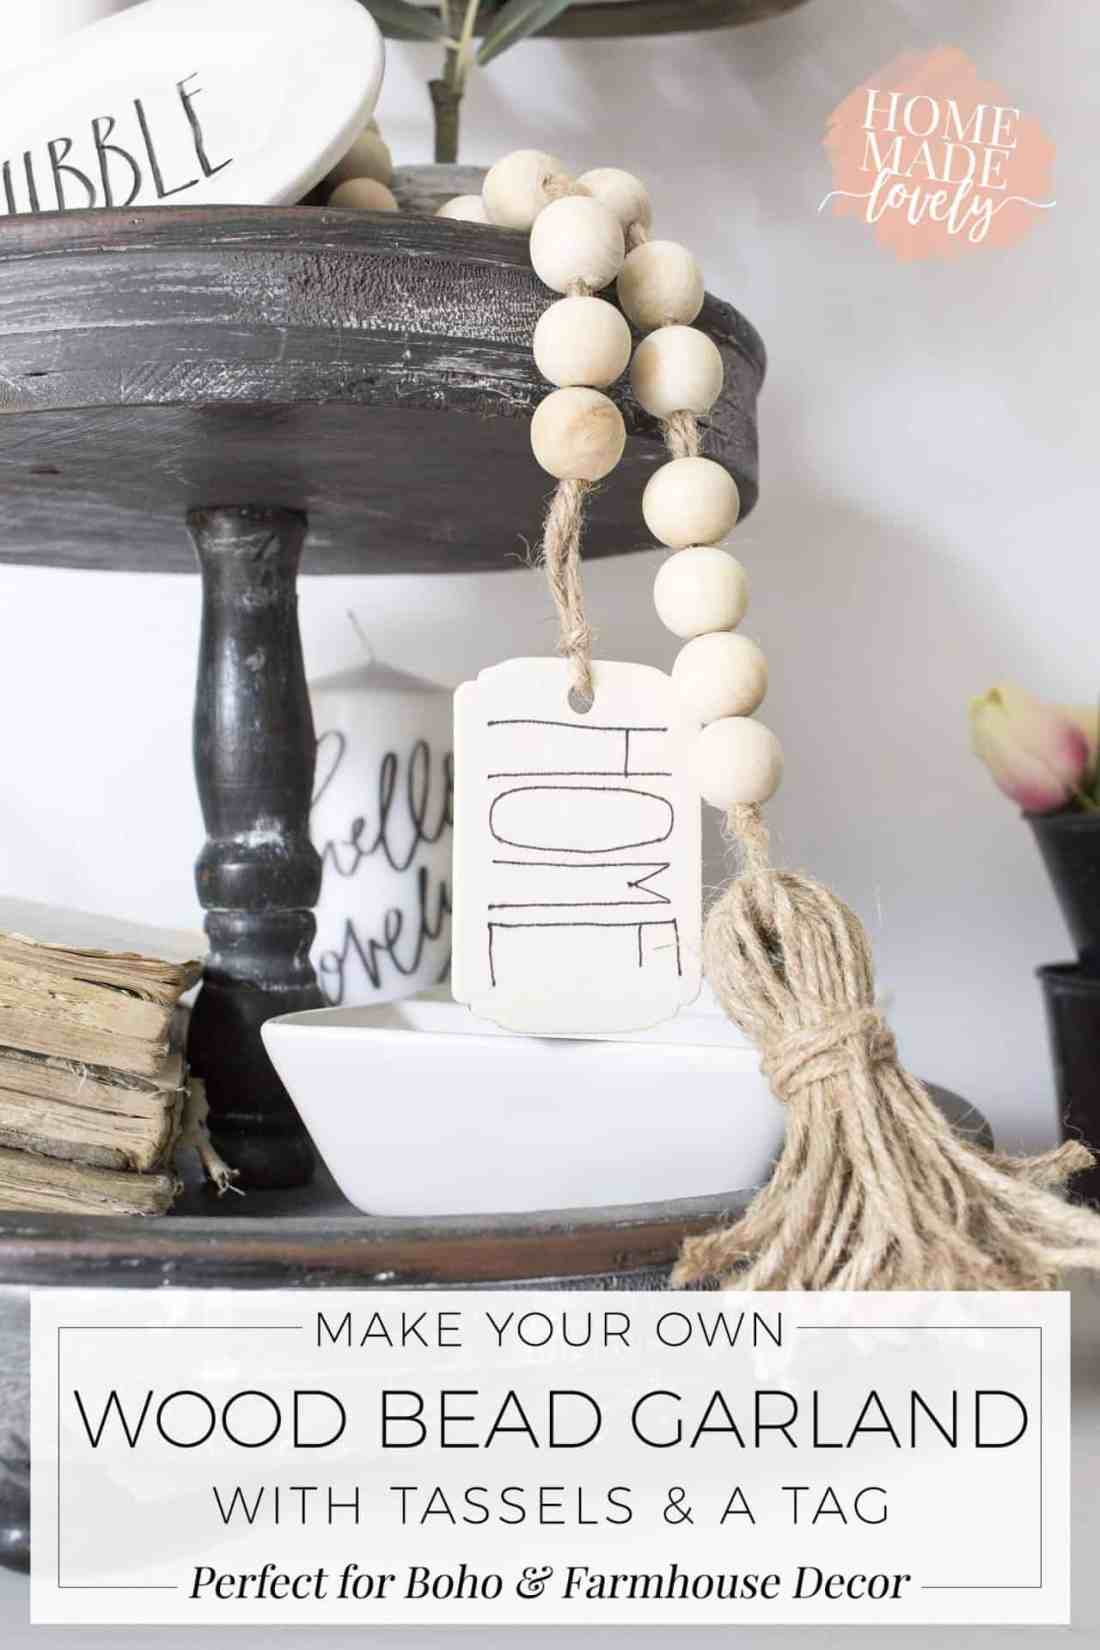 Make your own DIY wood bead garland with tassels and tag for your boho or farmhouse decorated home! The project only takes about 15 minutes! #diy #crafts #farmhousediy